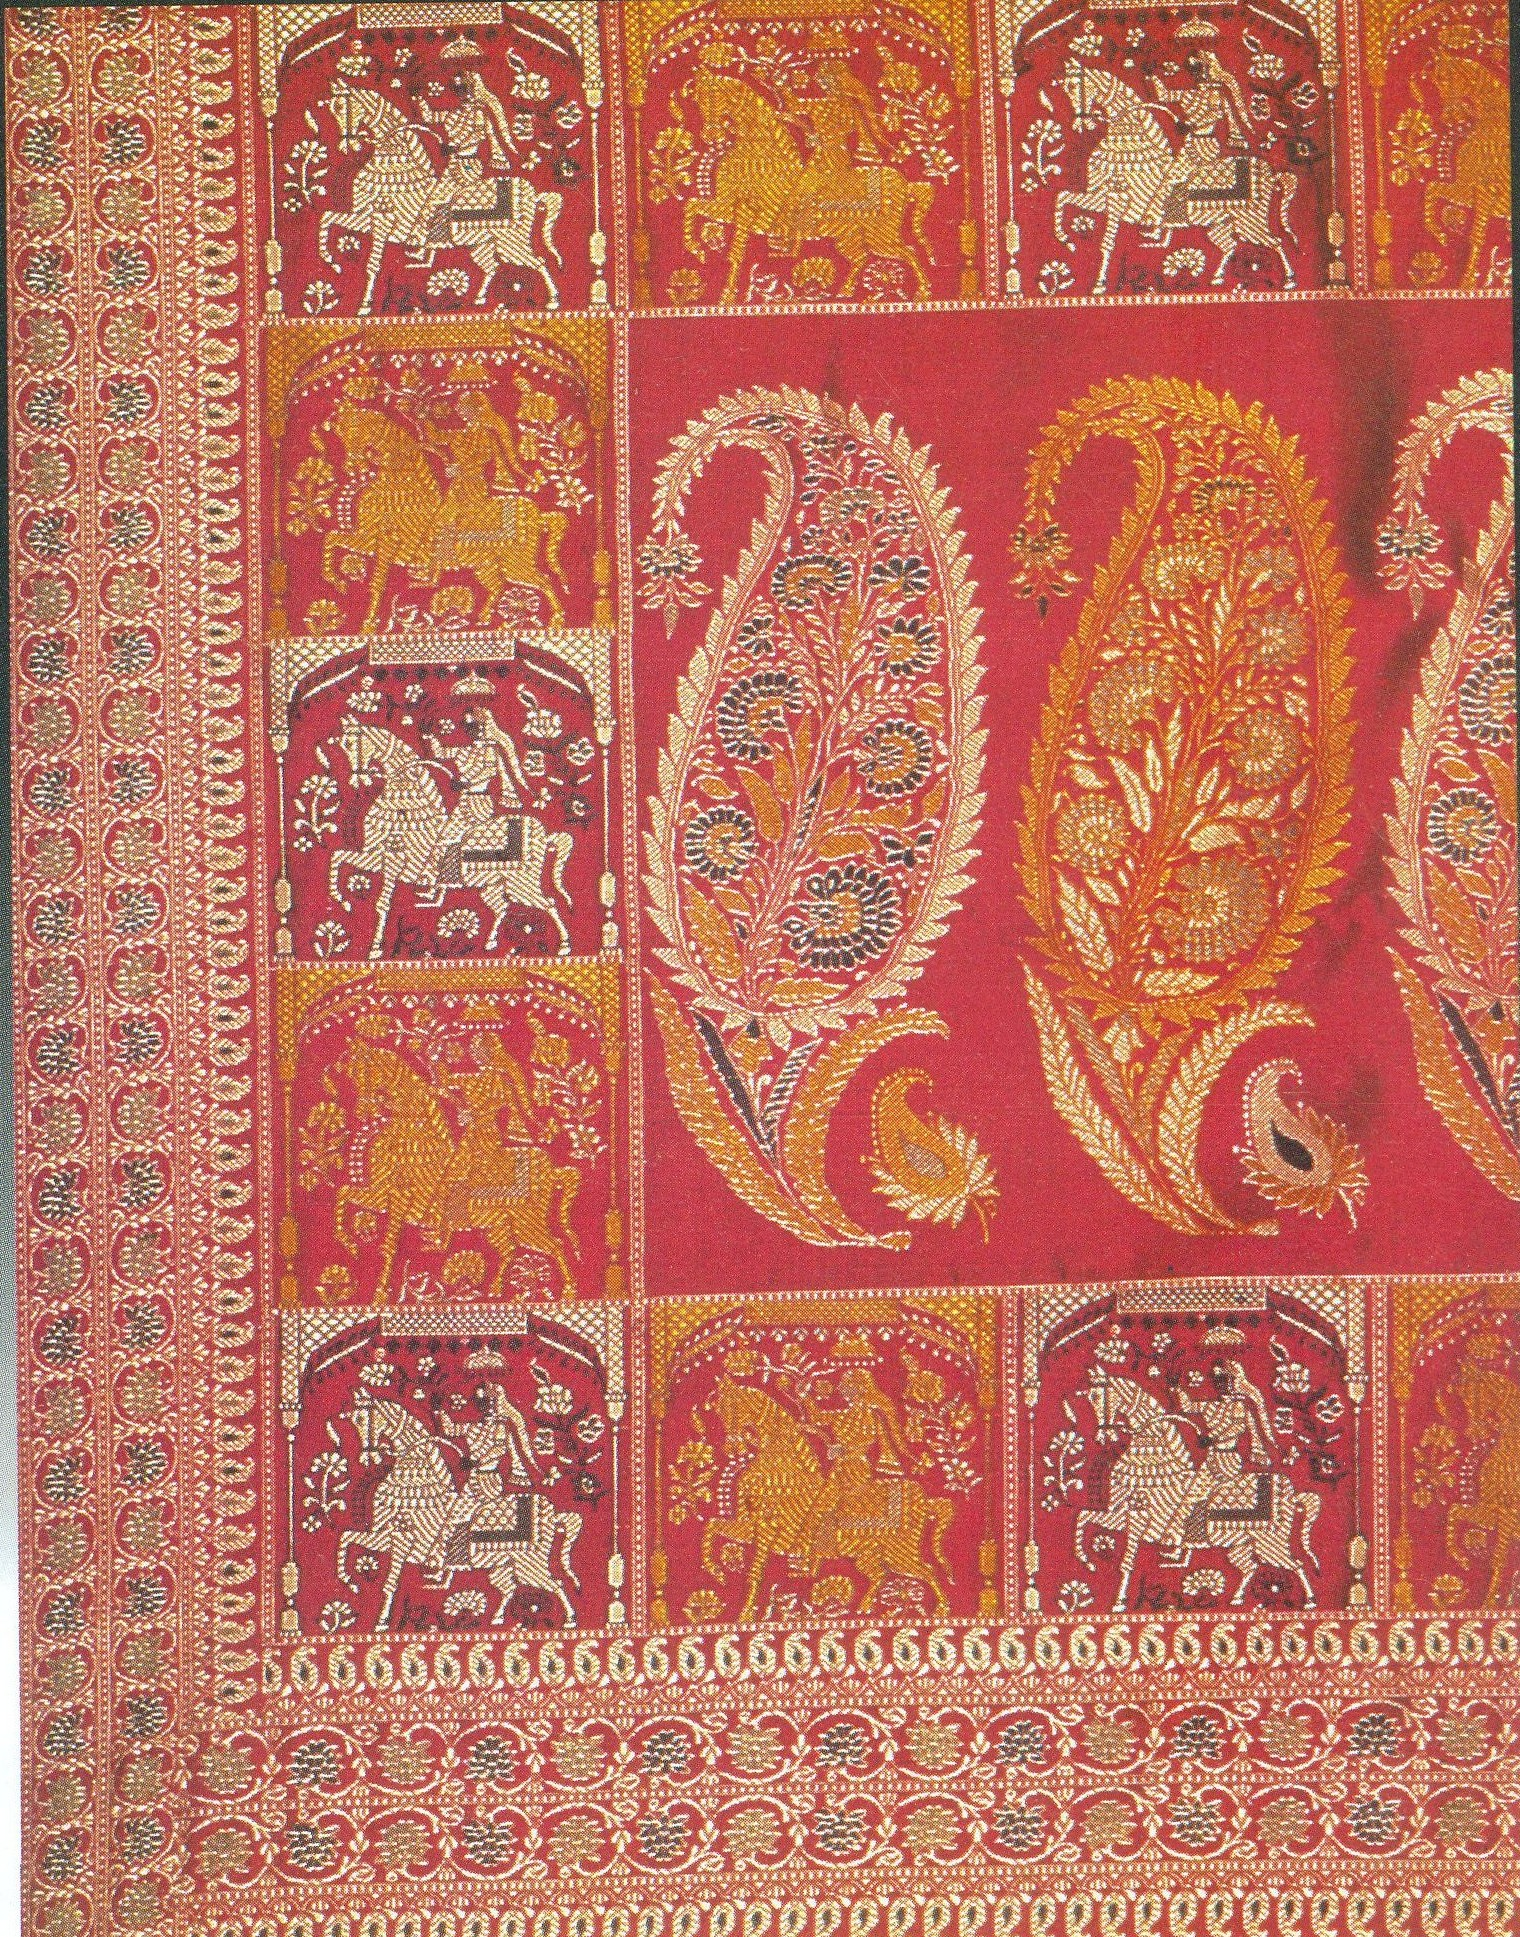 Baluchari of West Bengal